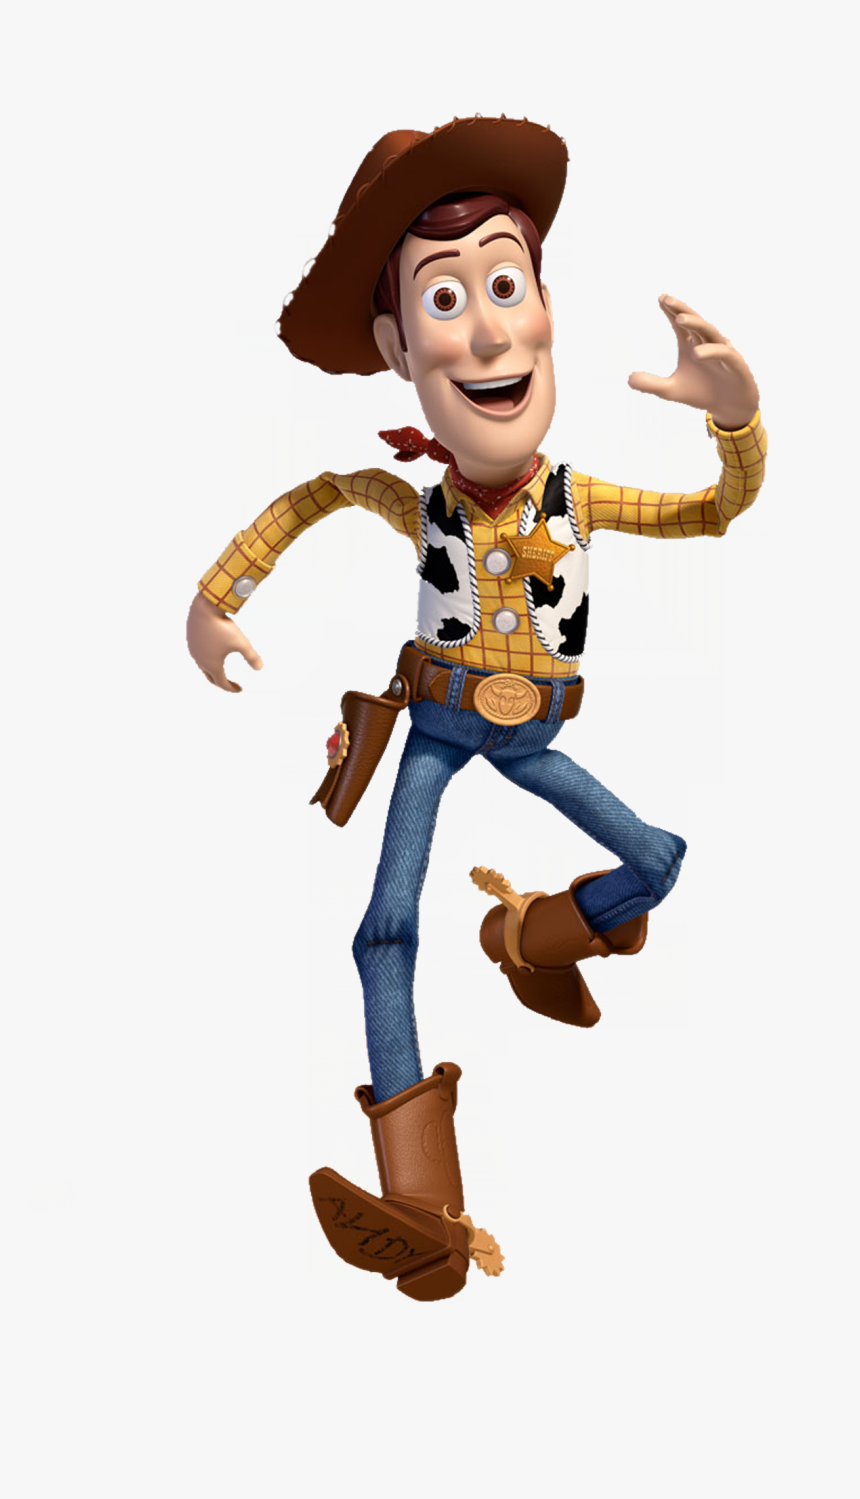 Pin Di Giorgia Ammirati Su Compleanno - Woody Toy Story Characters, HD Png Download, Free Download